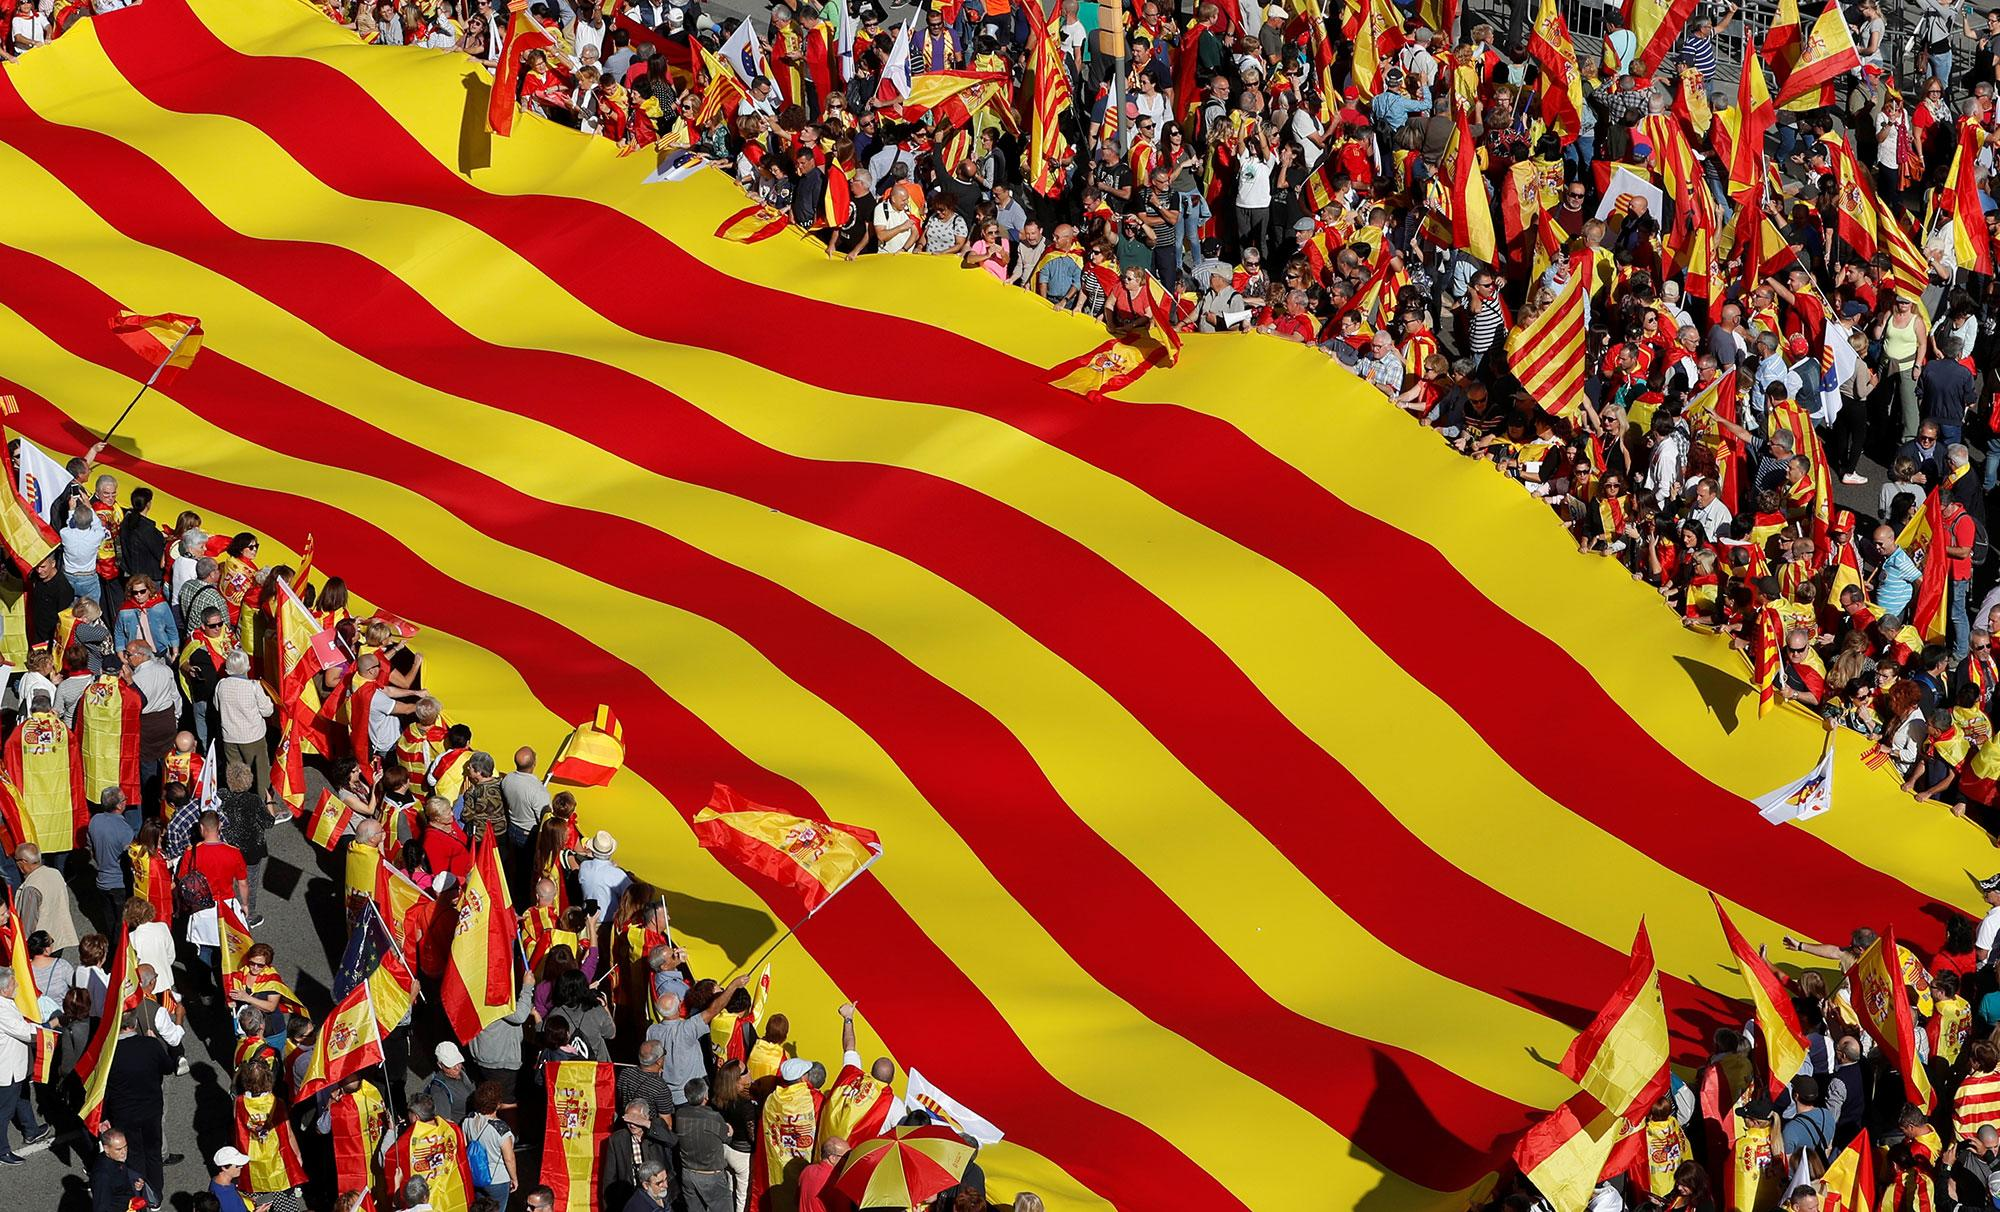 <p>Pro-unity supporters take part in a demonstration in central Barcelona, Spain, Oct. 29, 2017. (Photo: Yves Herman/Reuters) </p>